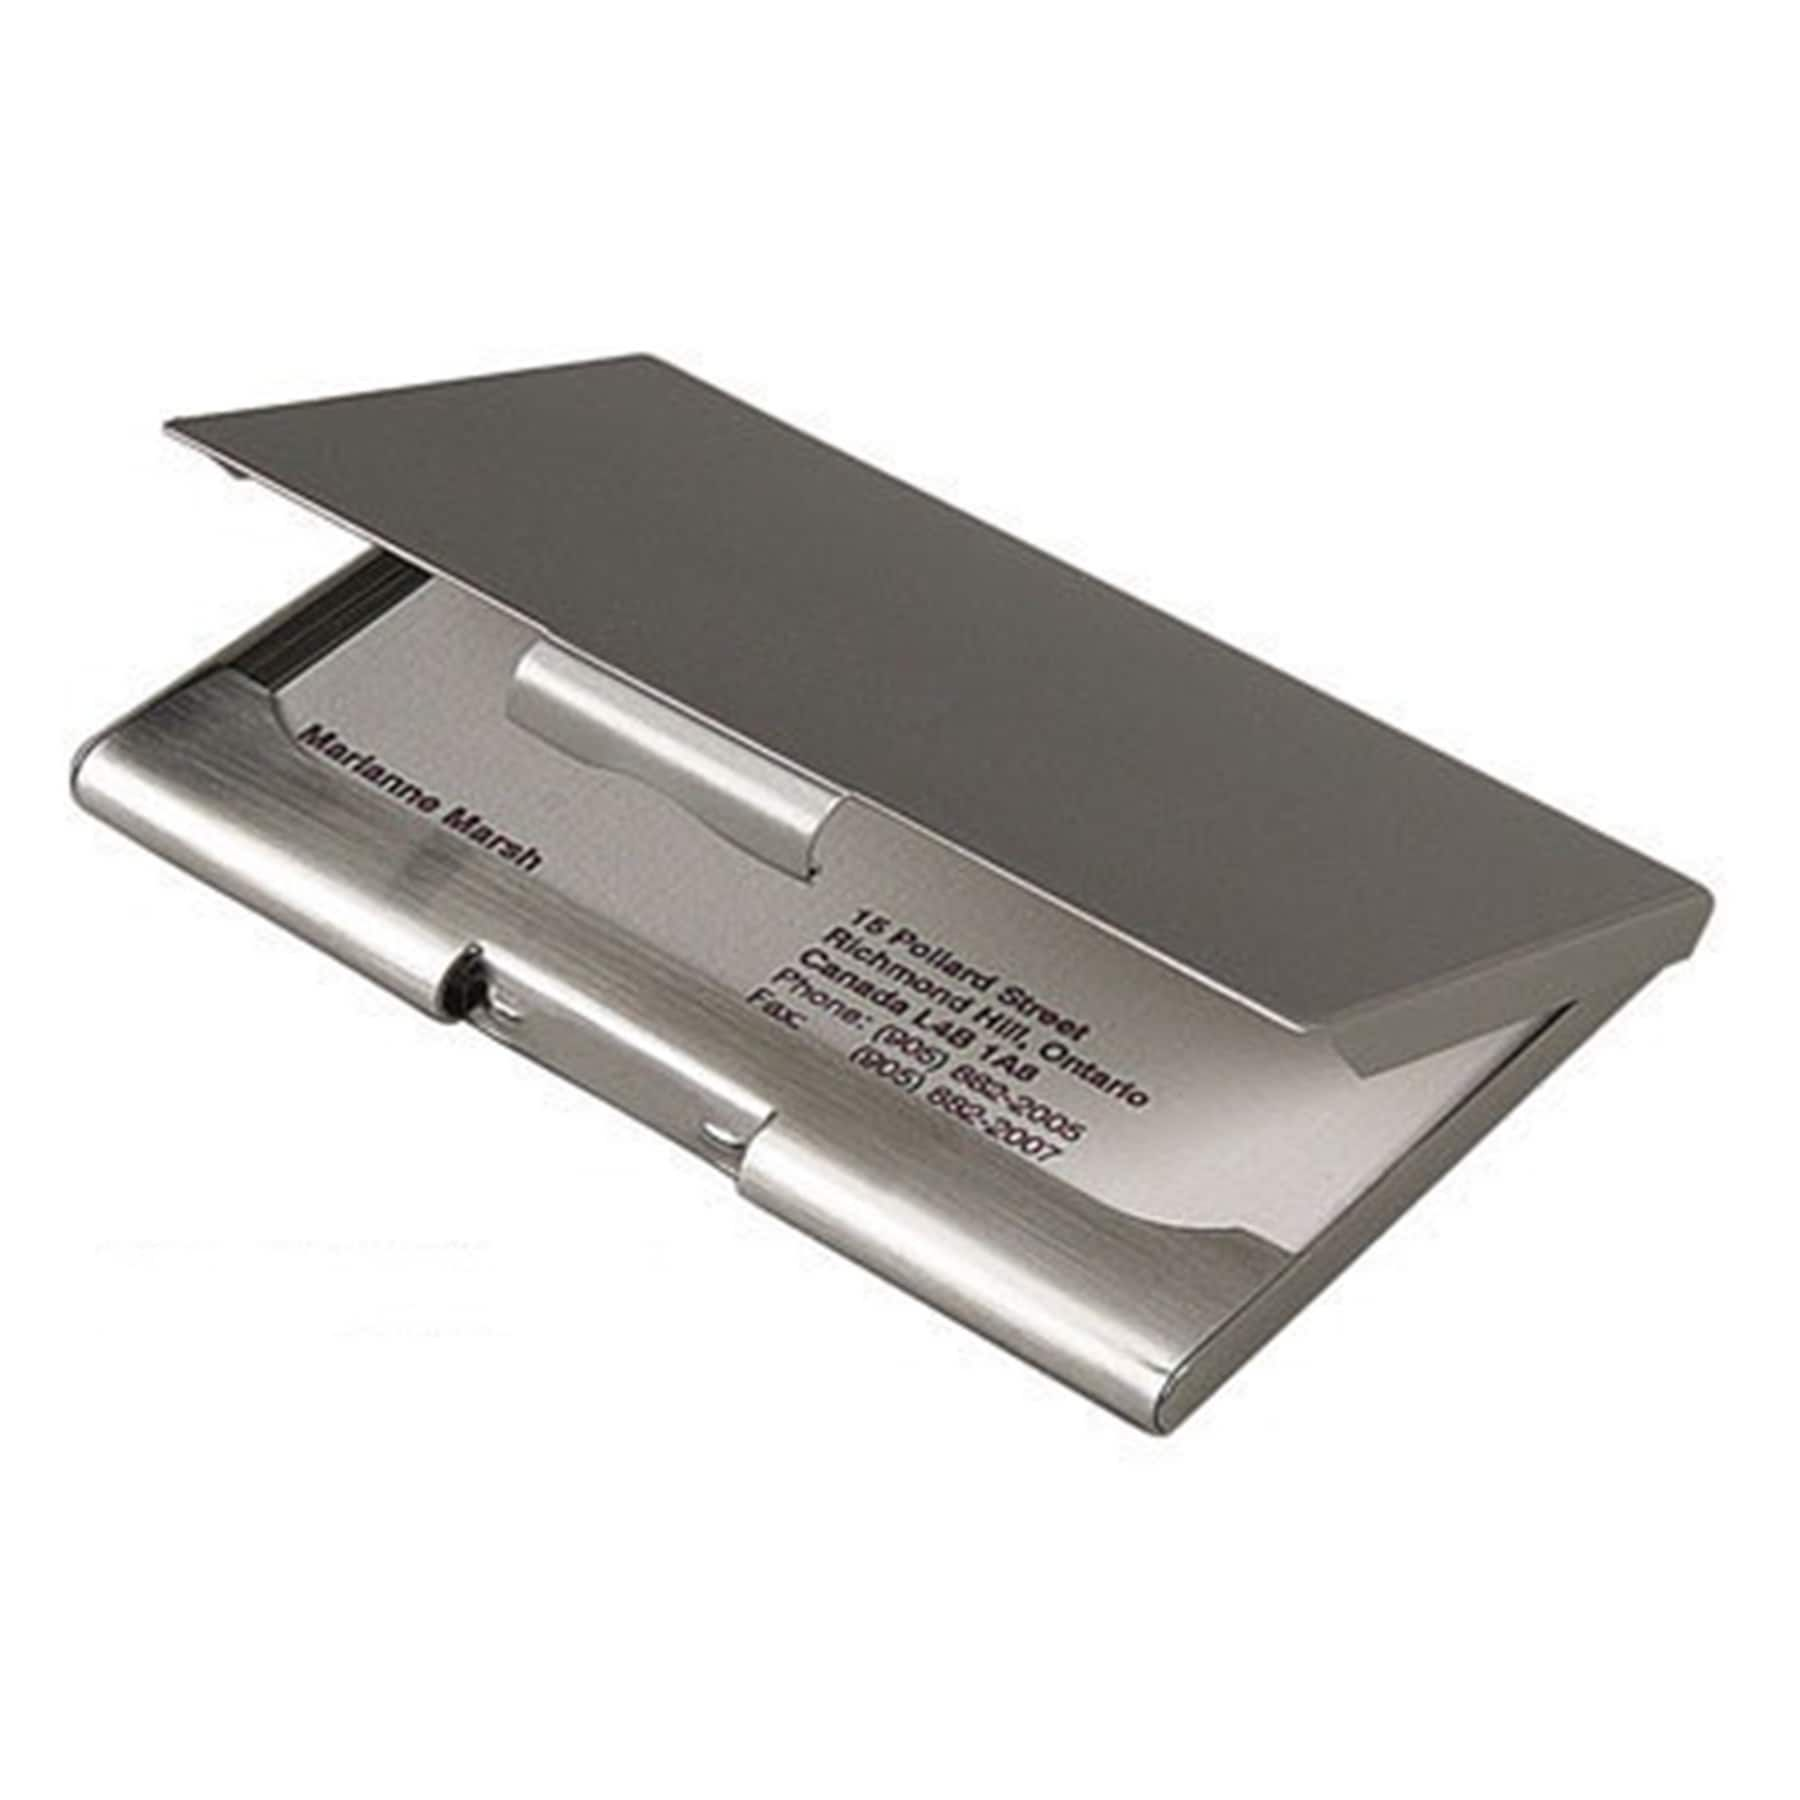 Heim Concept Executive Business Card Holder Case-Satin | Products ...